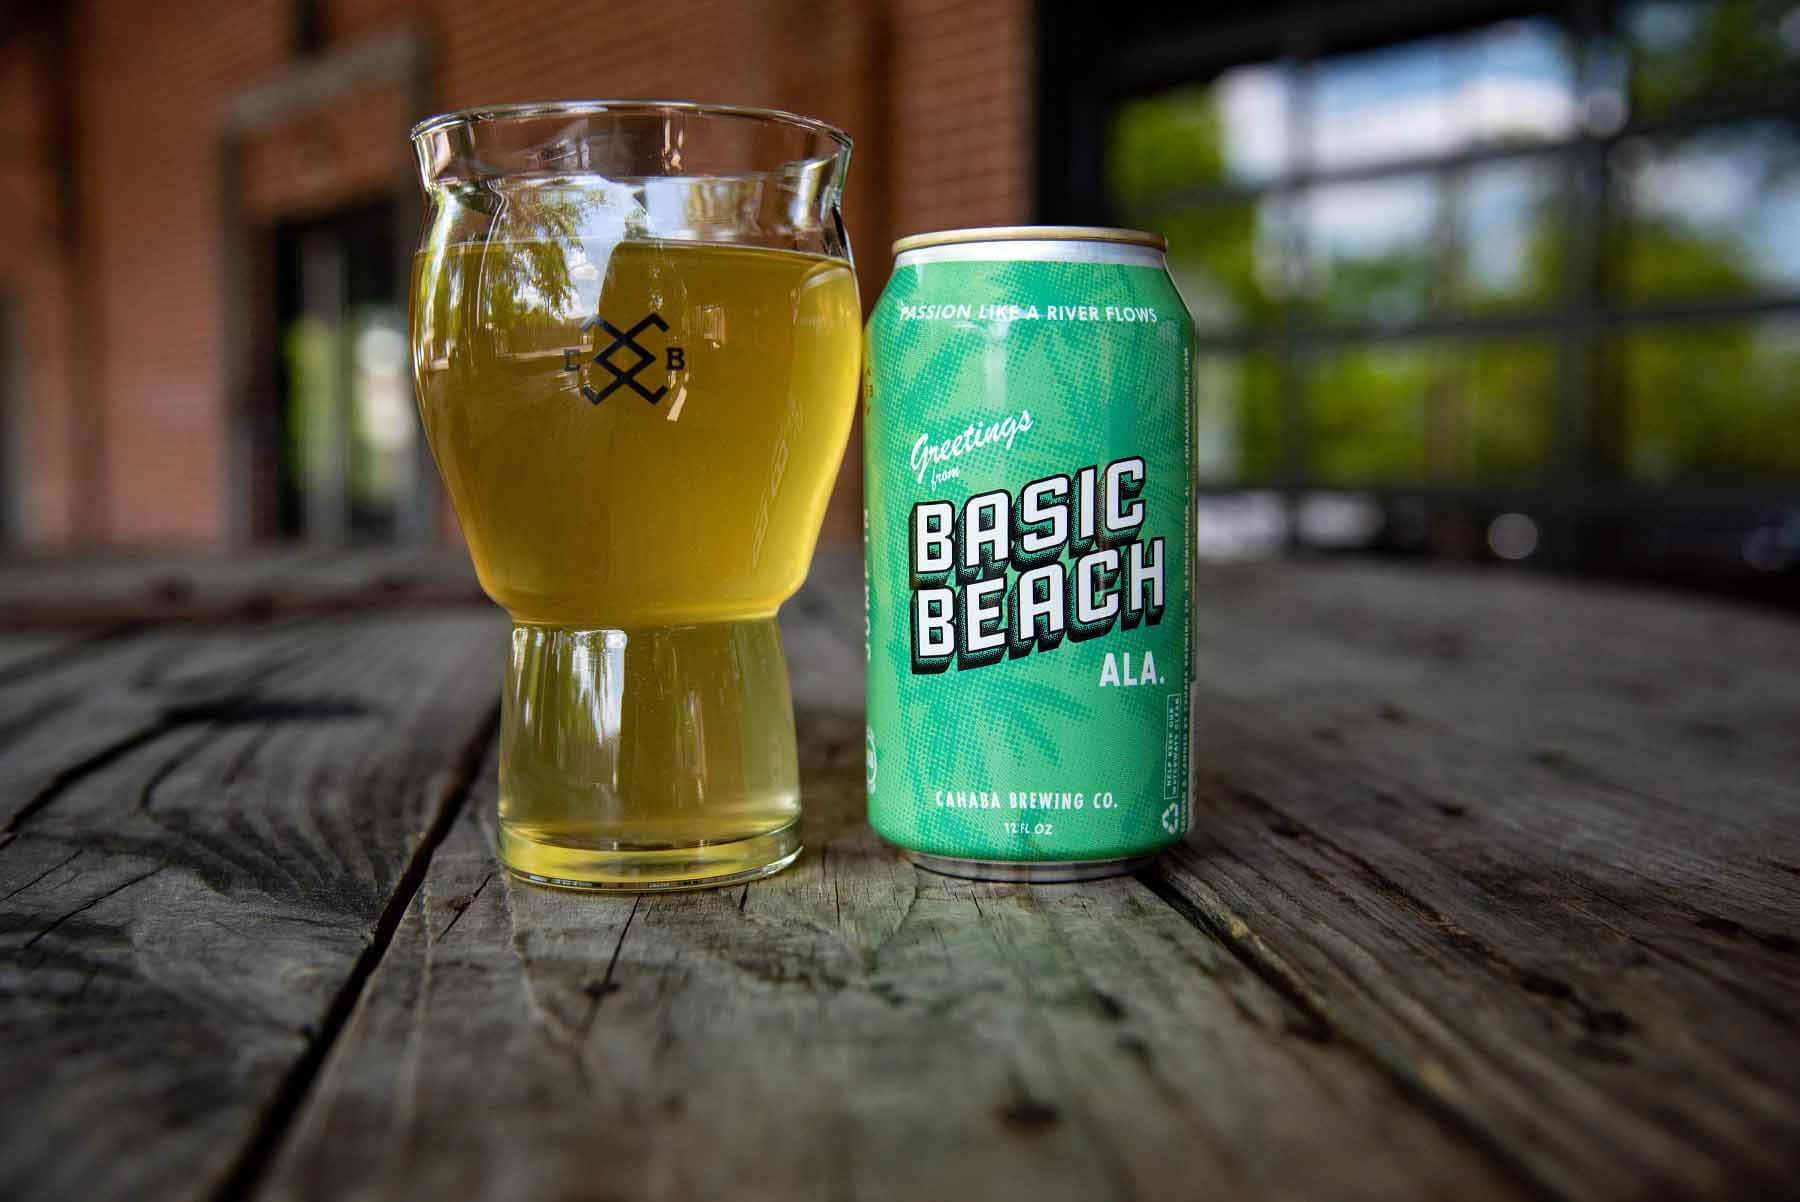 Basic Beach Berliner, a summer beer from Cahaba Brewing Company